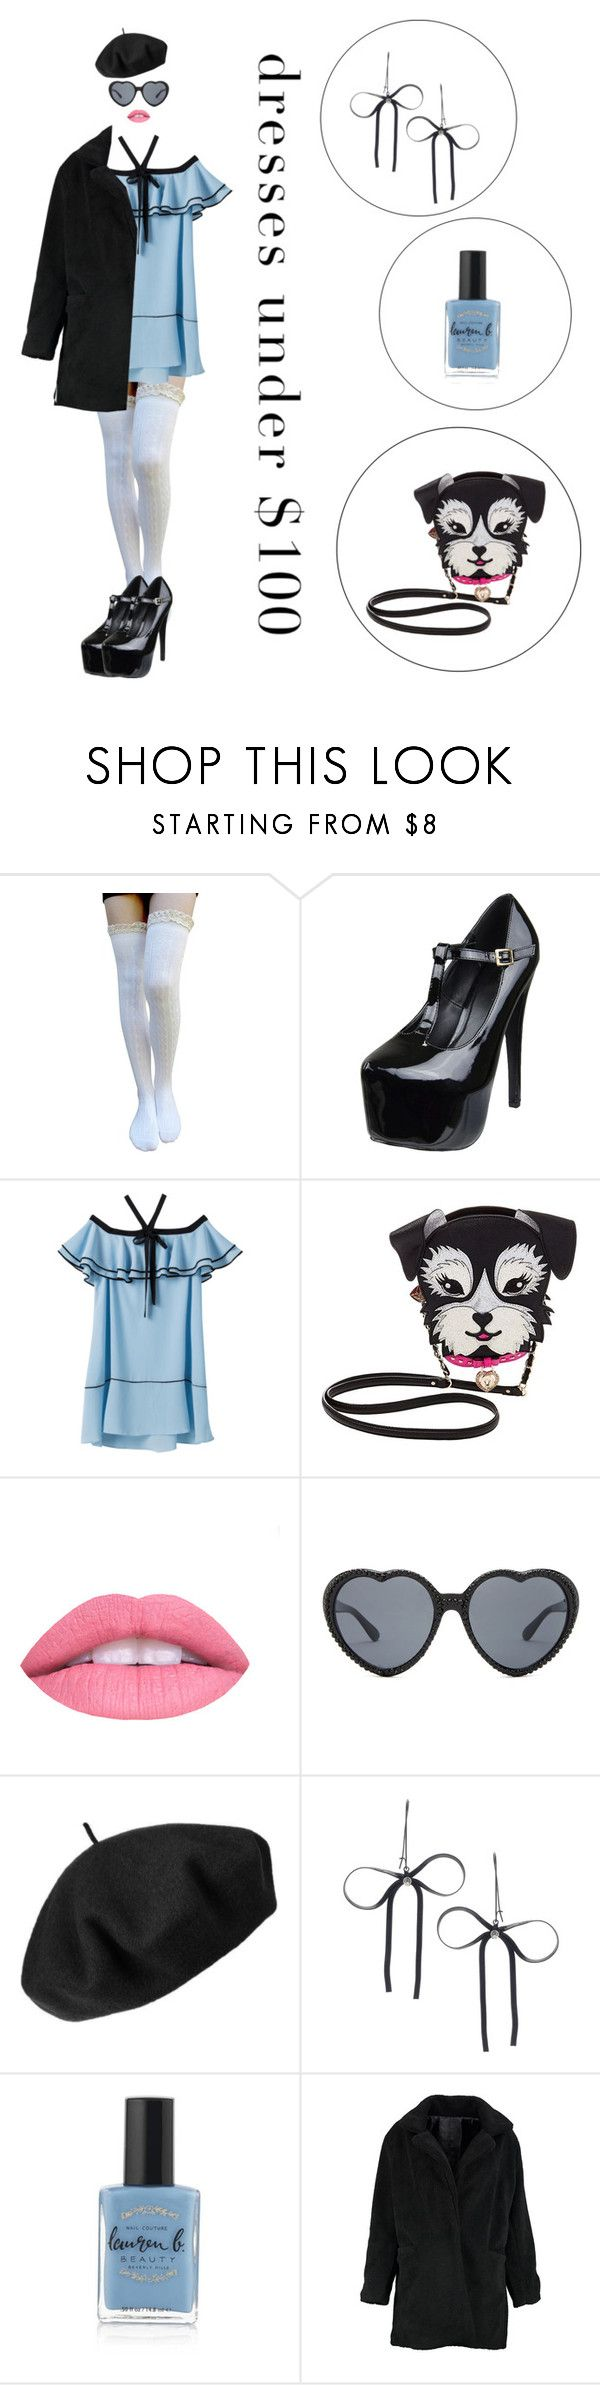 """""""Beauty on a Budget"""" by blacksoul-blackclothes ❤ liked on Polyvore featuring Betsey Johnson, L.A. Girl, Betmar, Lauren B. Beauty and Boohoo"""